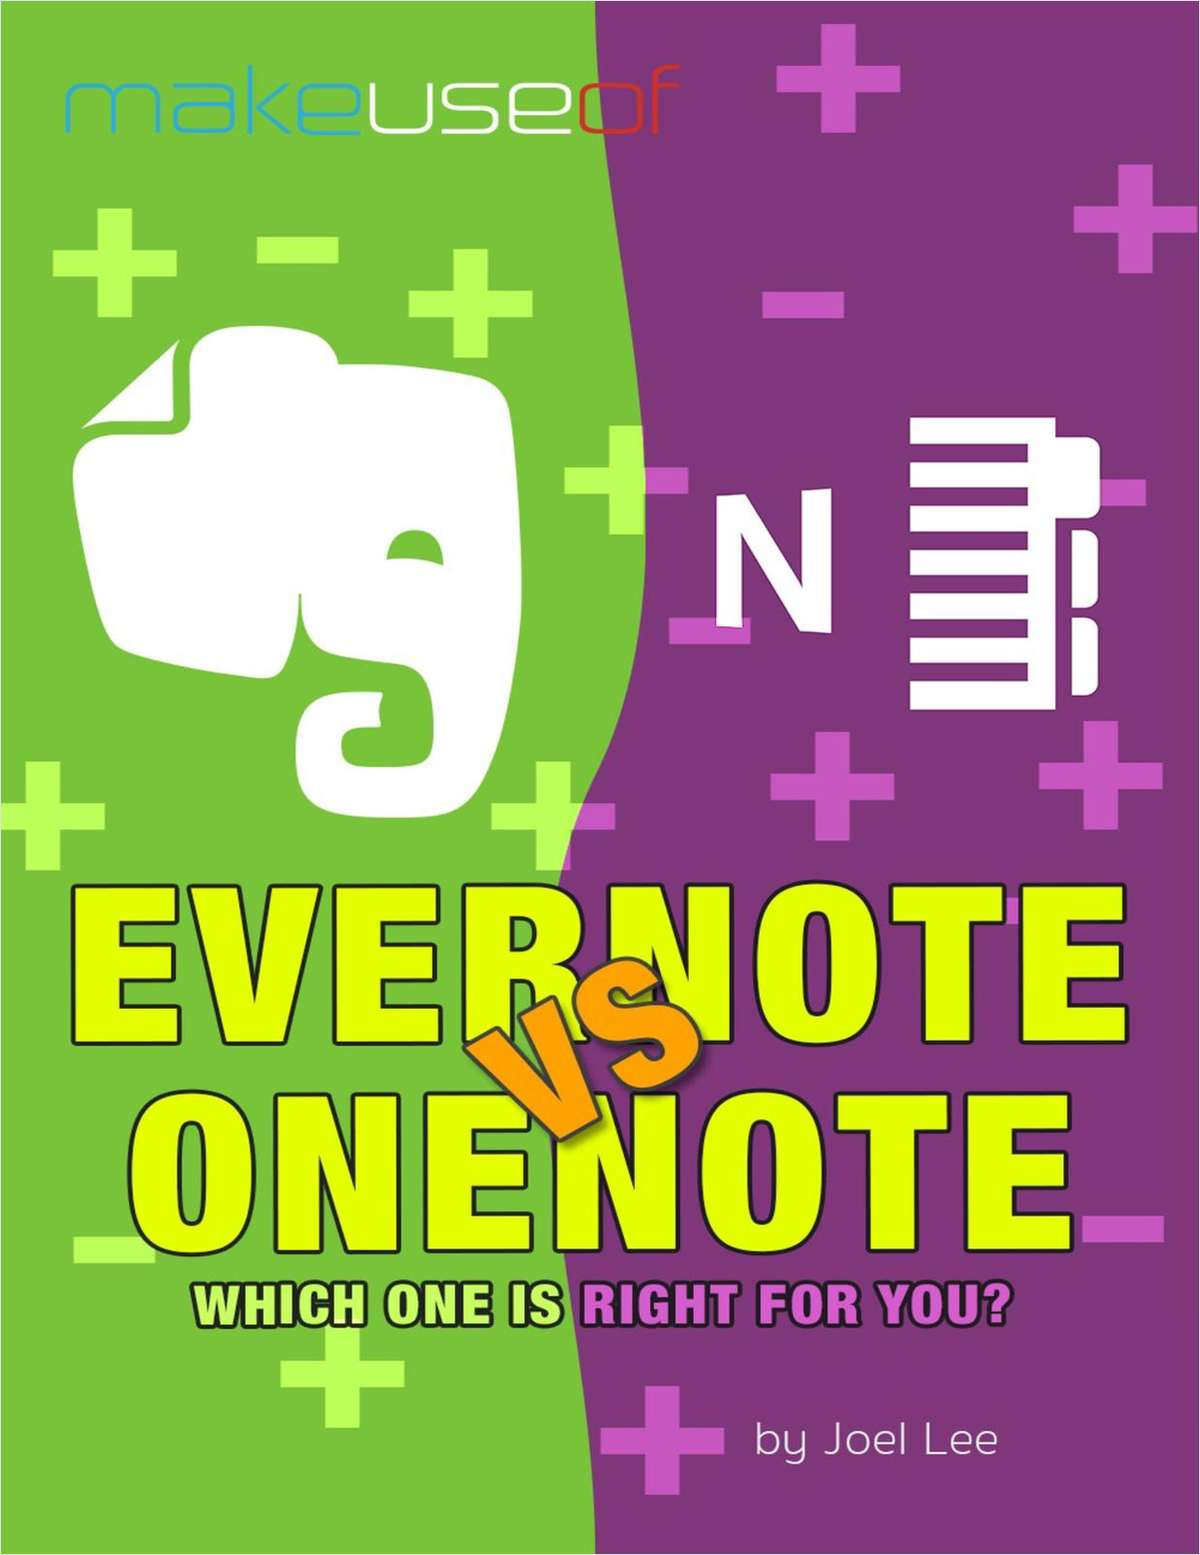 Evernote vs Onenote: Which One is Right for You?